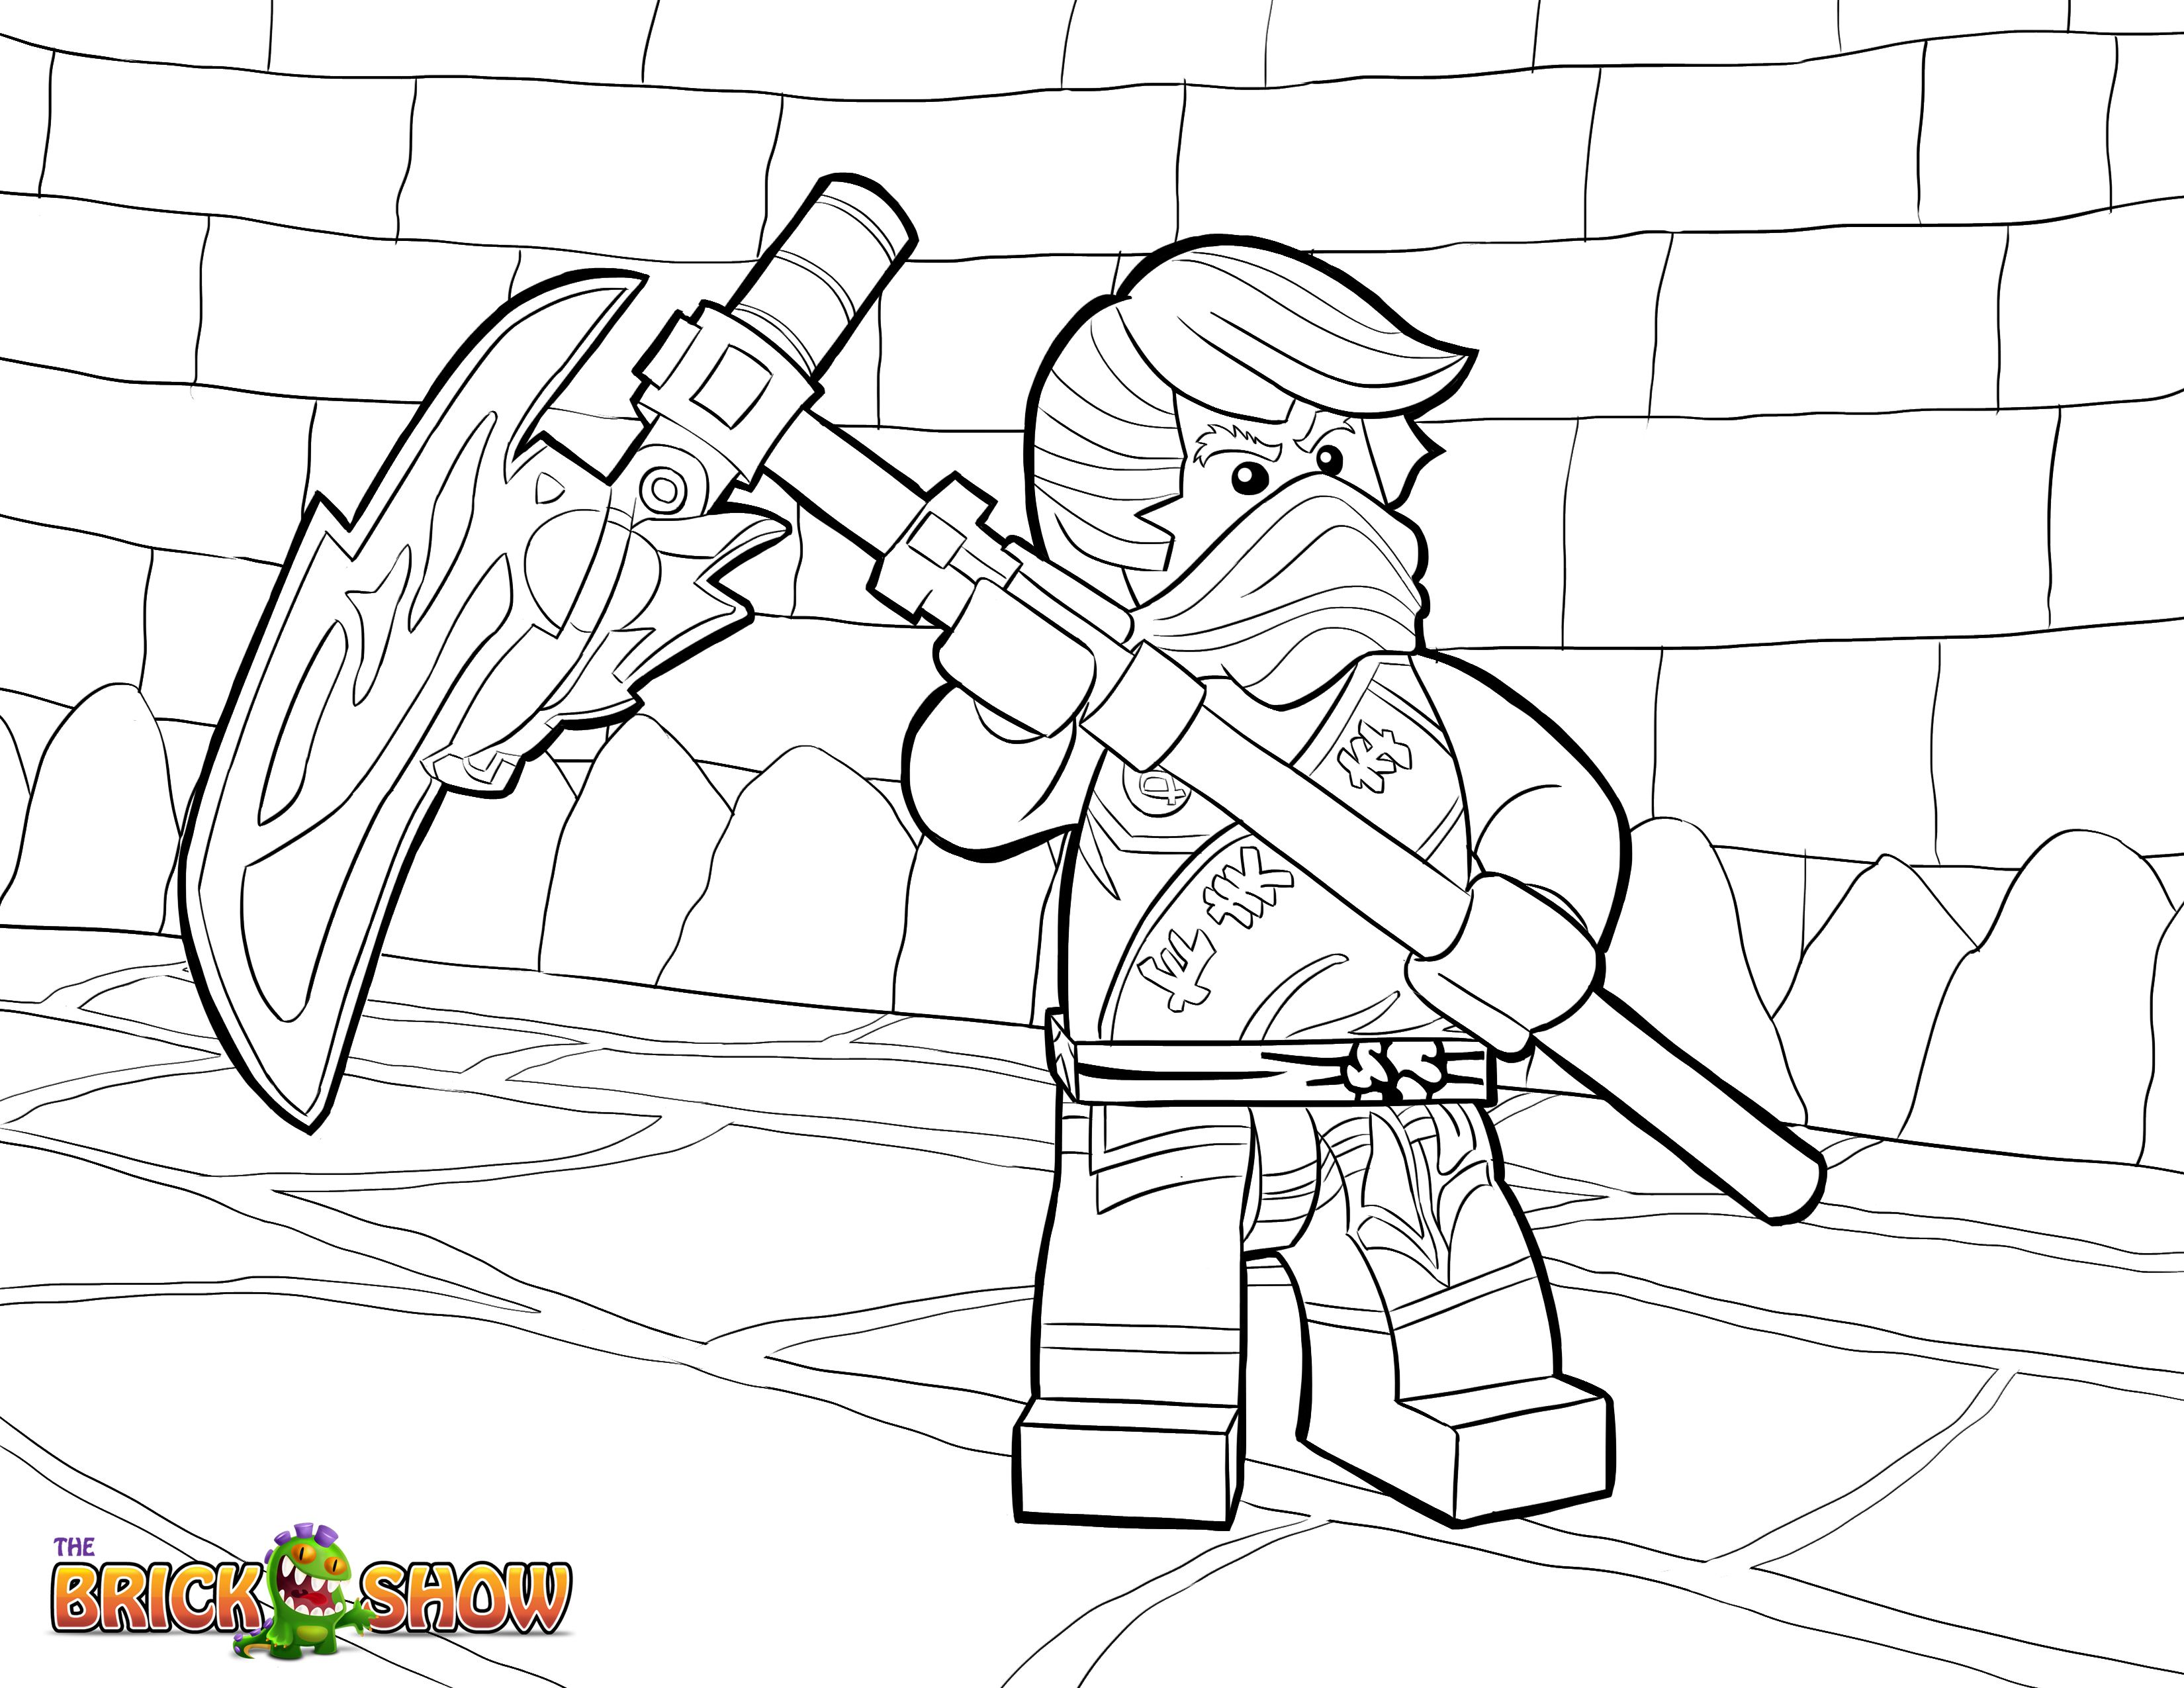 Clip Art Brick Coloring Page brick coloring page az pages show style pages